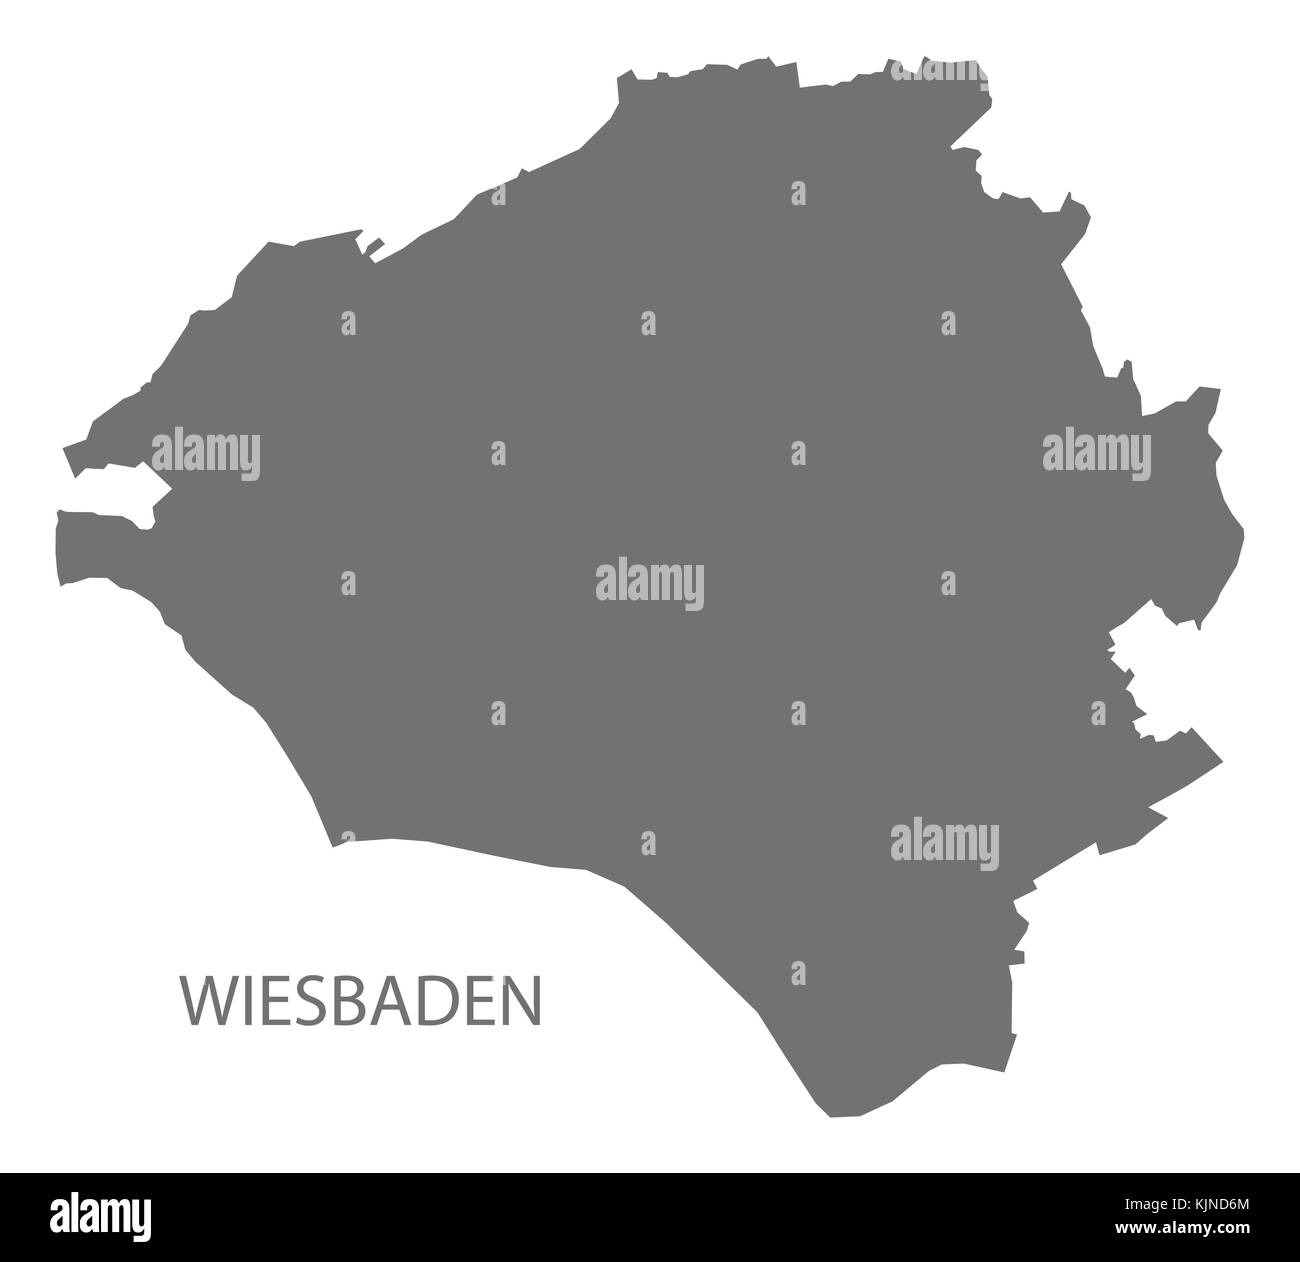 Wiesbaden city map grey illustration silhouette shape Stock Vector